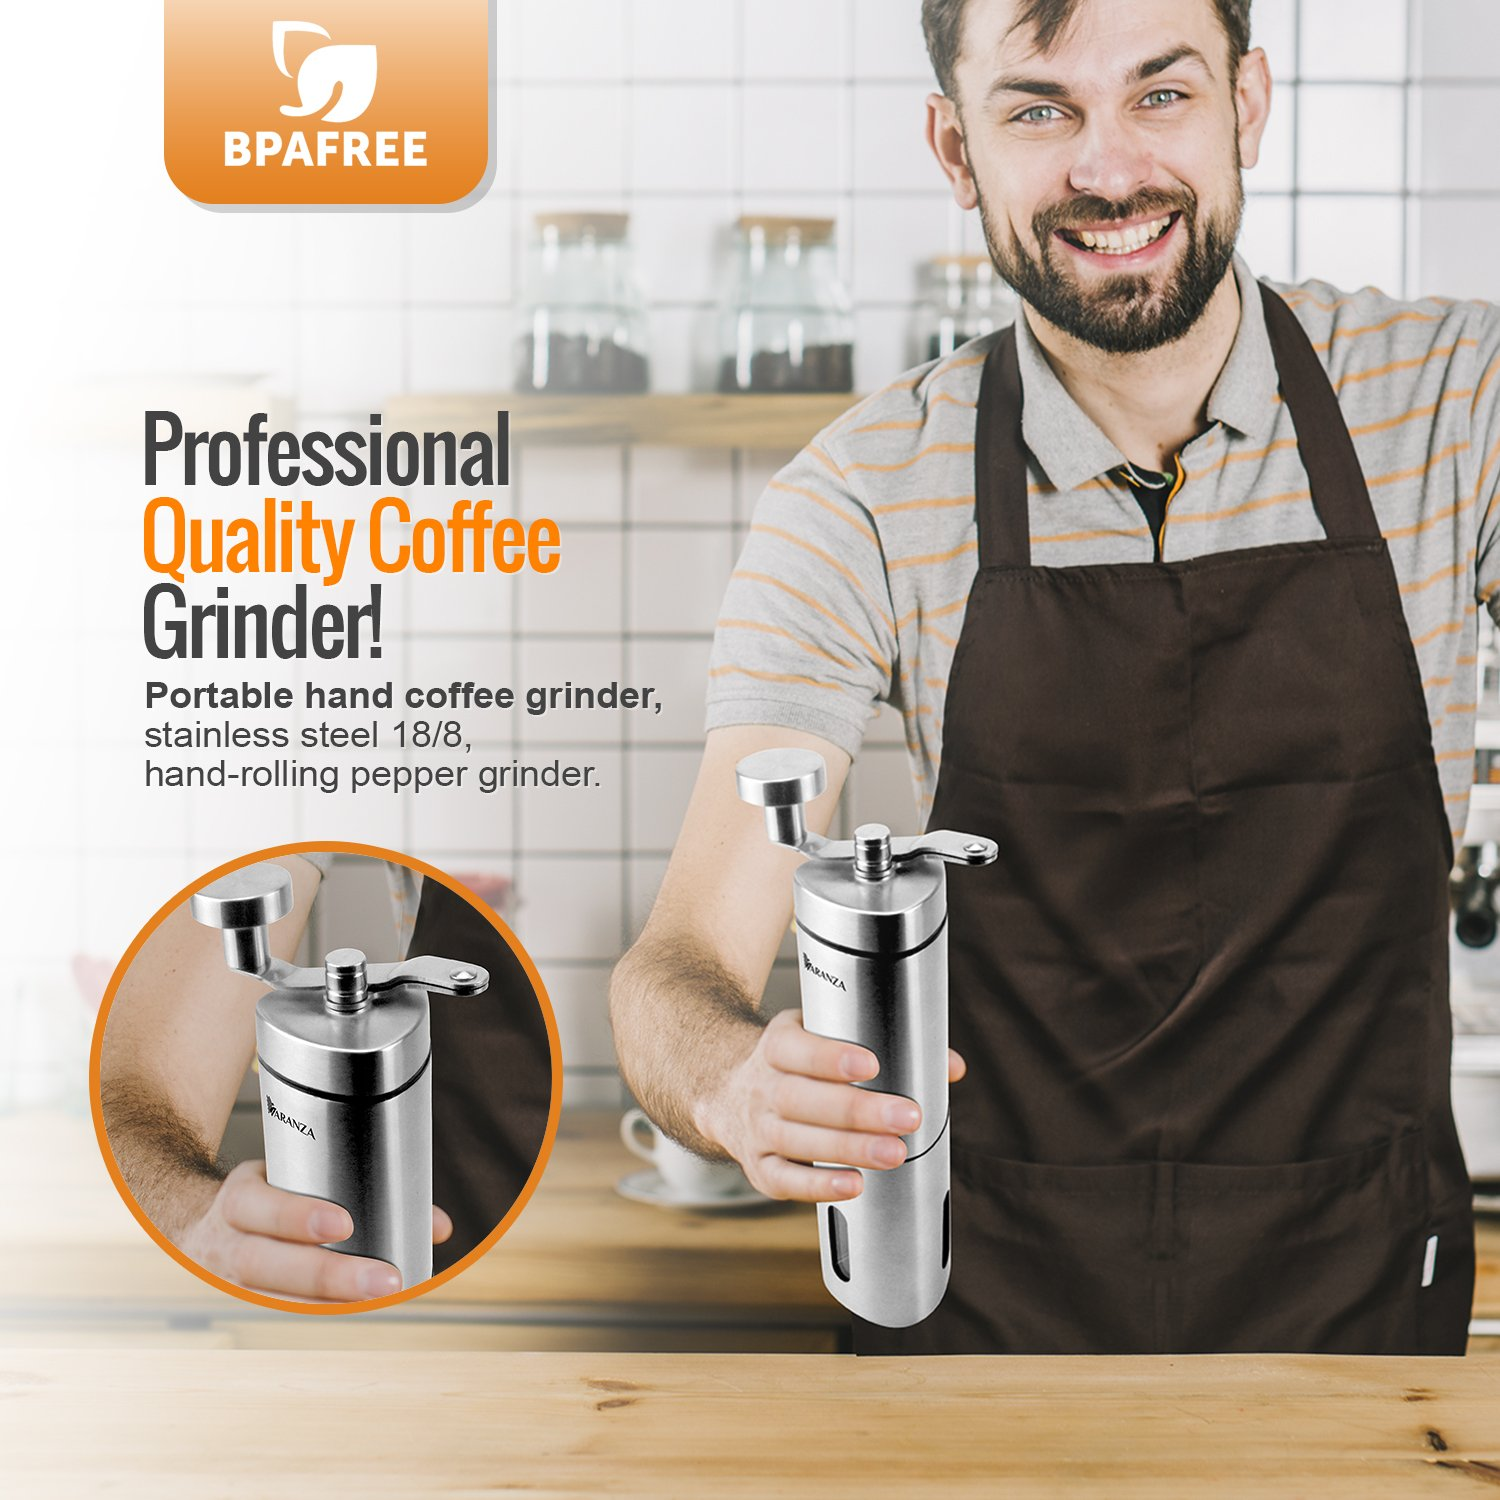 Varanza Personal Coffee Grinder - Small, Portable and Lightweight Grinder for Coffee Beans - Multipurpose Stainless Steel Coffee Grinder